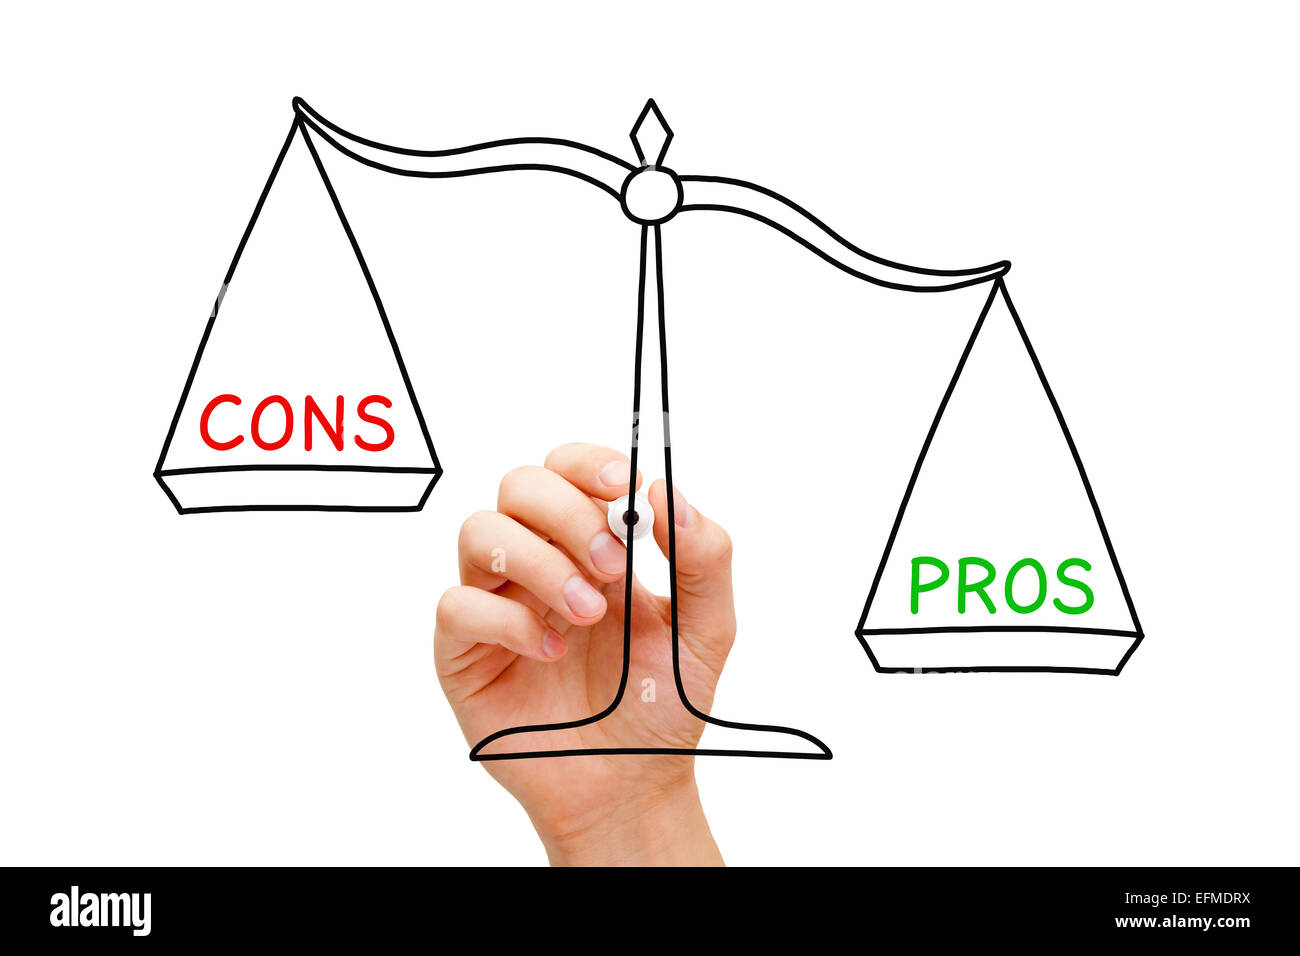 Hand drawing Pros and Cons scale concept with marker on transparent wipe board isolated on white. - Stock Image